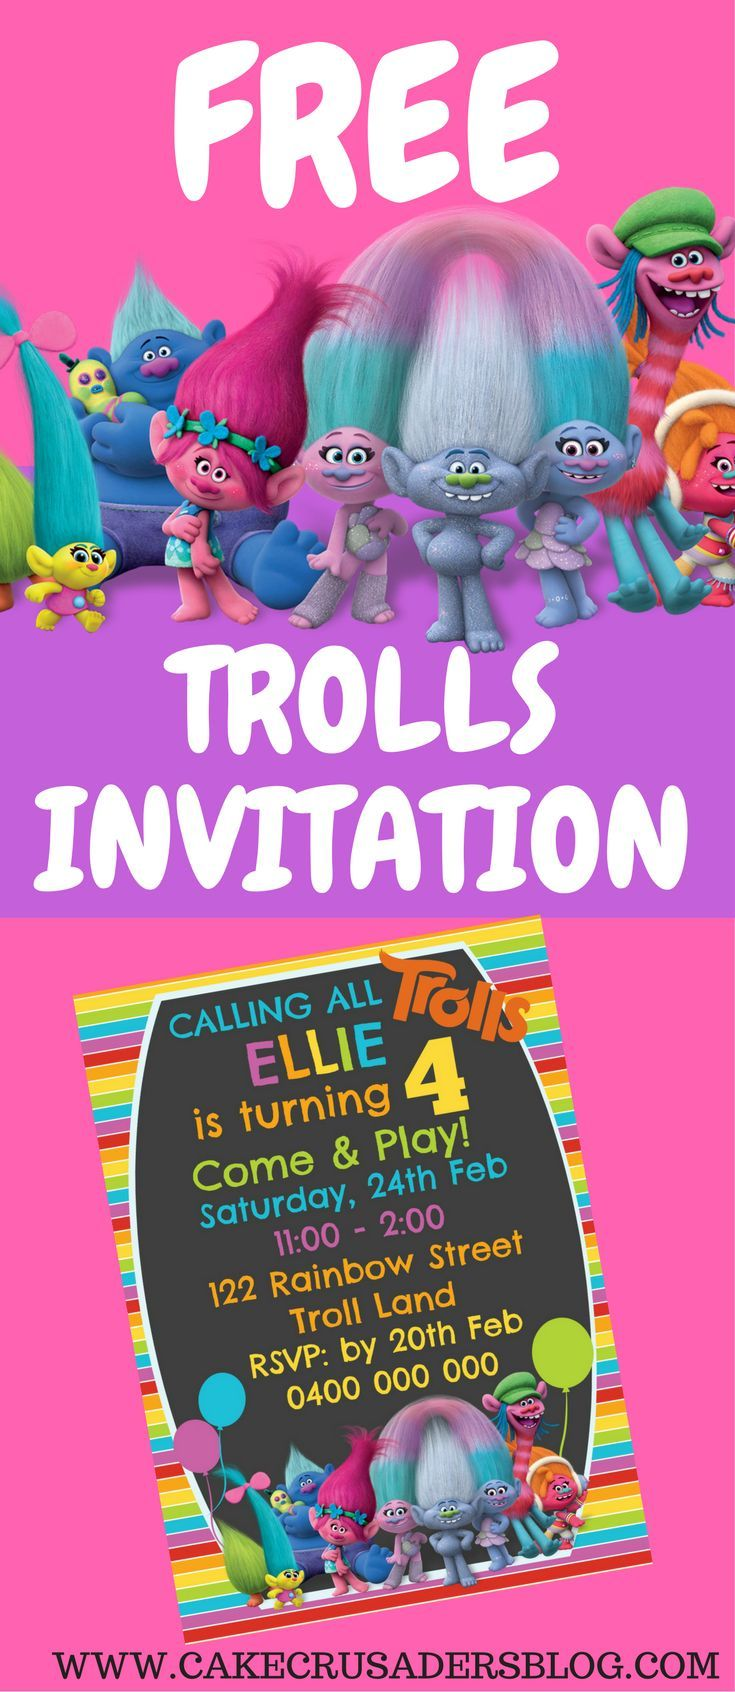 Dashing image with regard to free printable trolls invitations